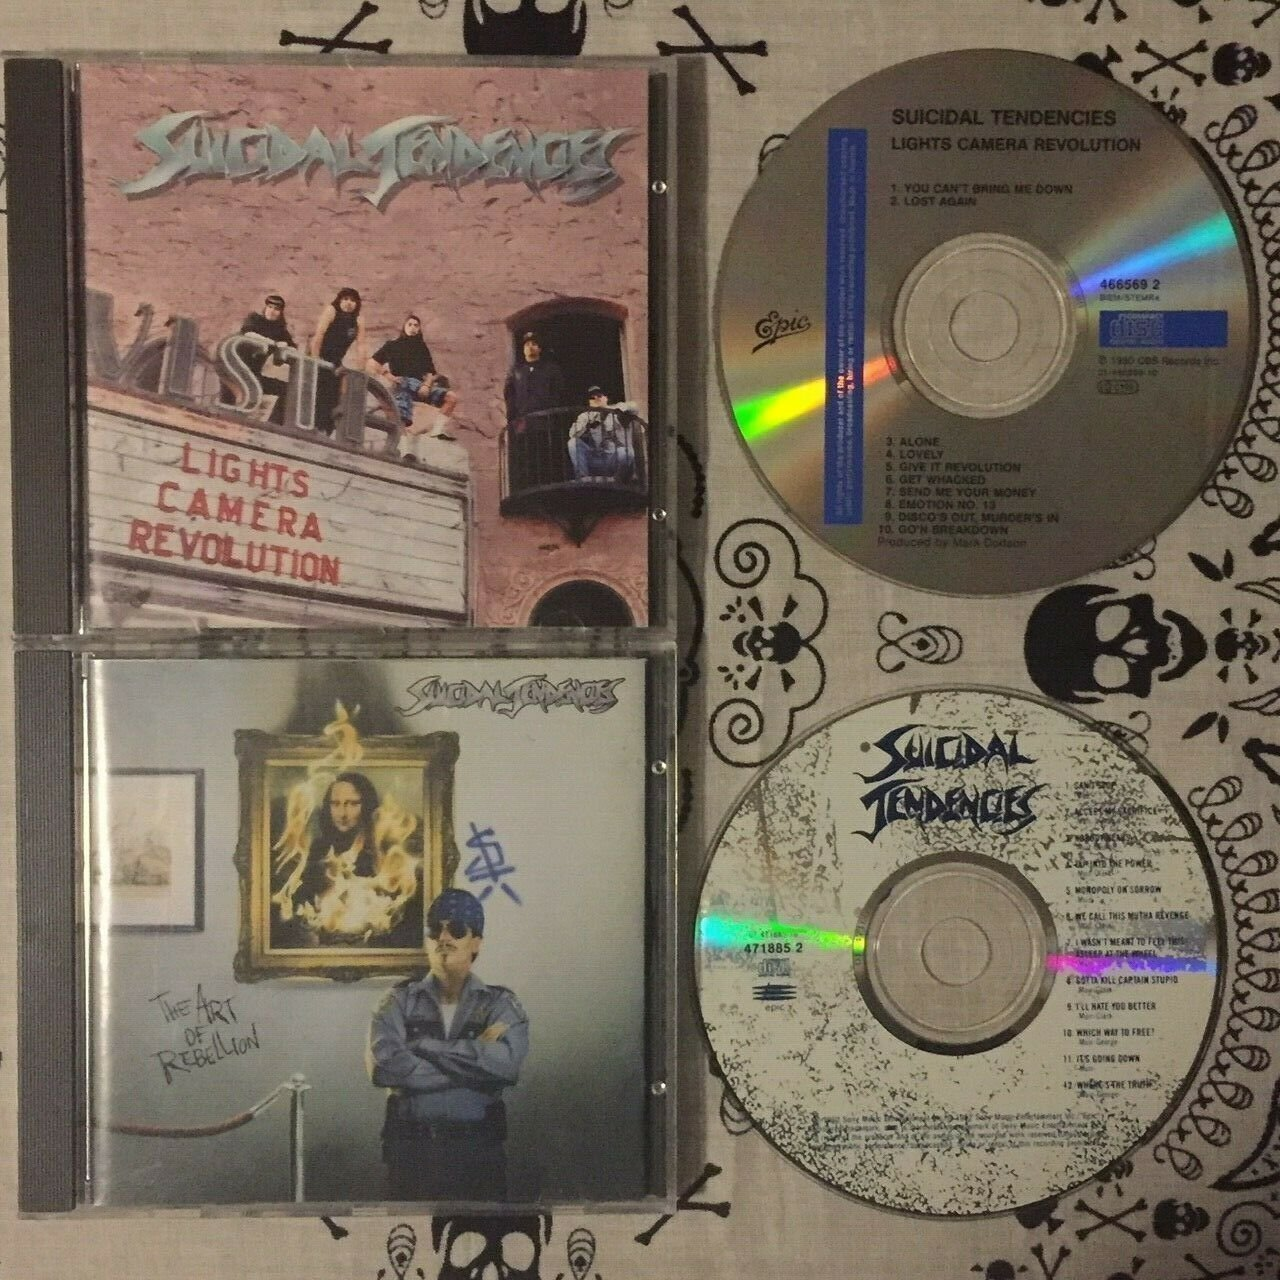 SUICIDAL TENDENCIES 2 CD LOT Lights Camera Revolution The Art of Rebellion EXCEL